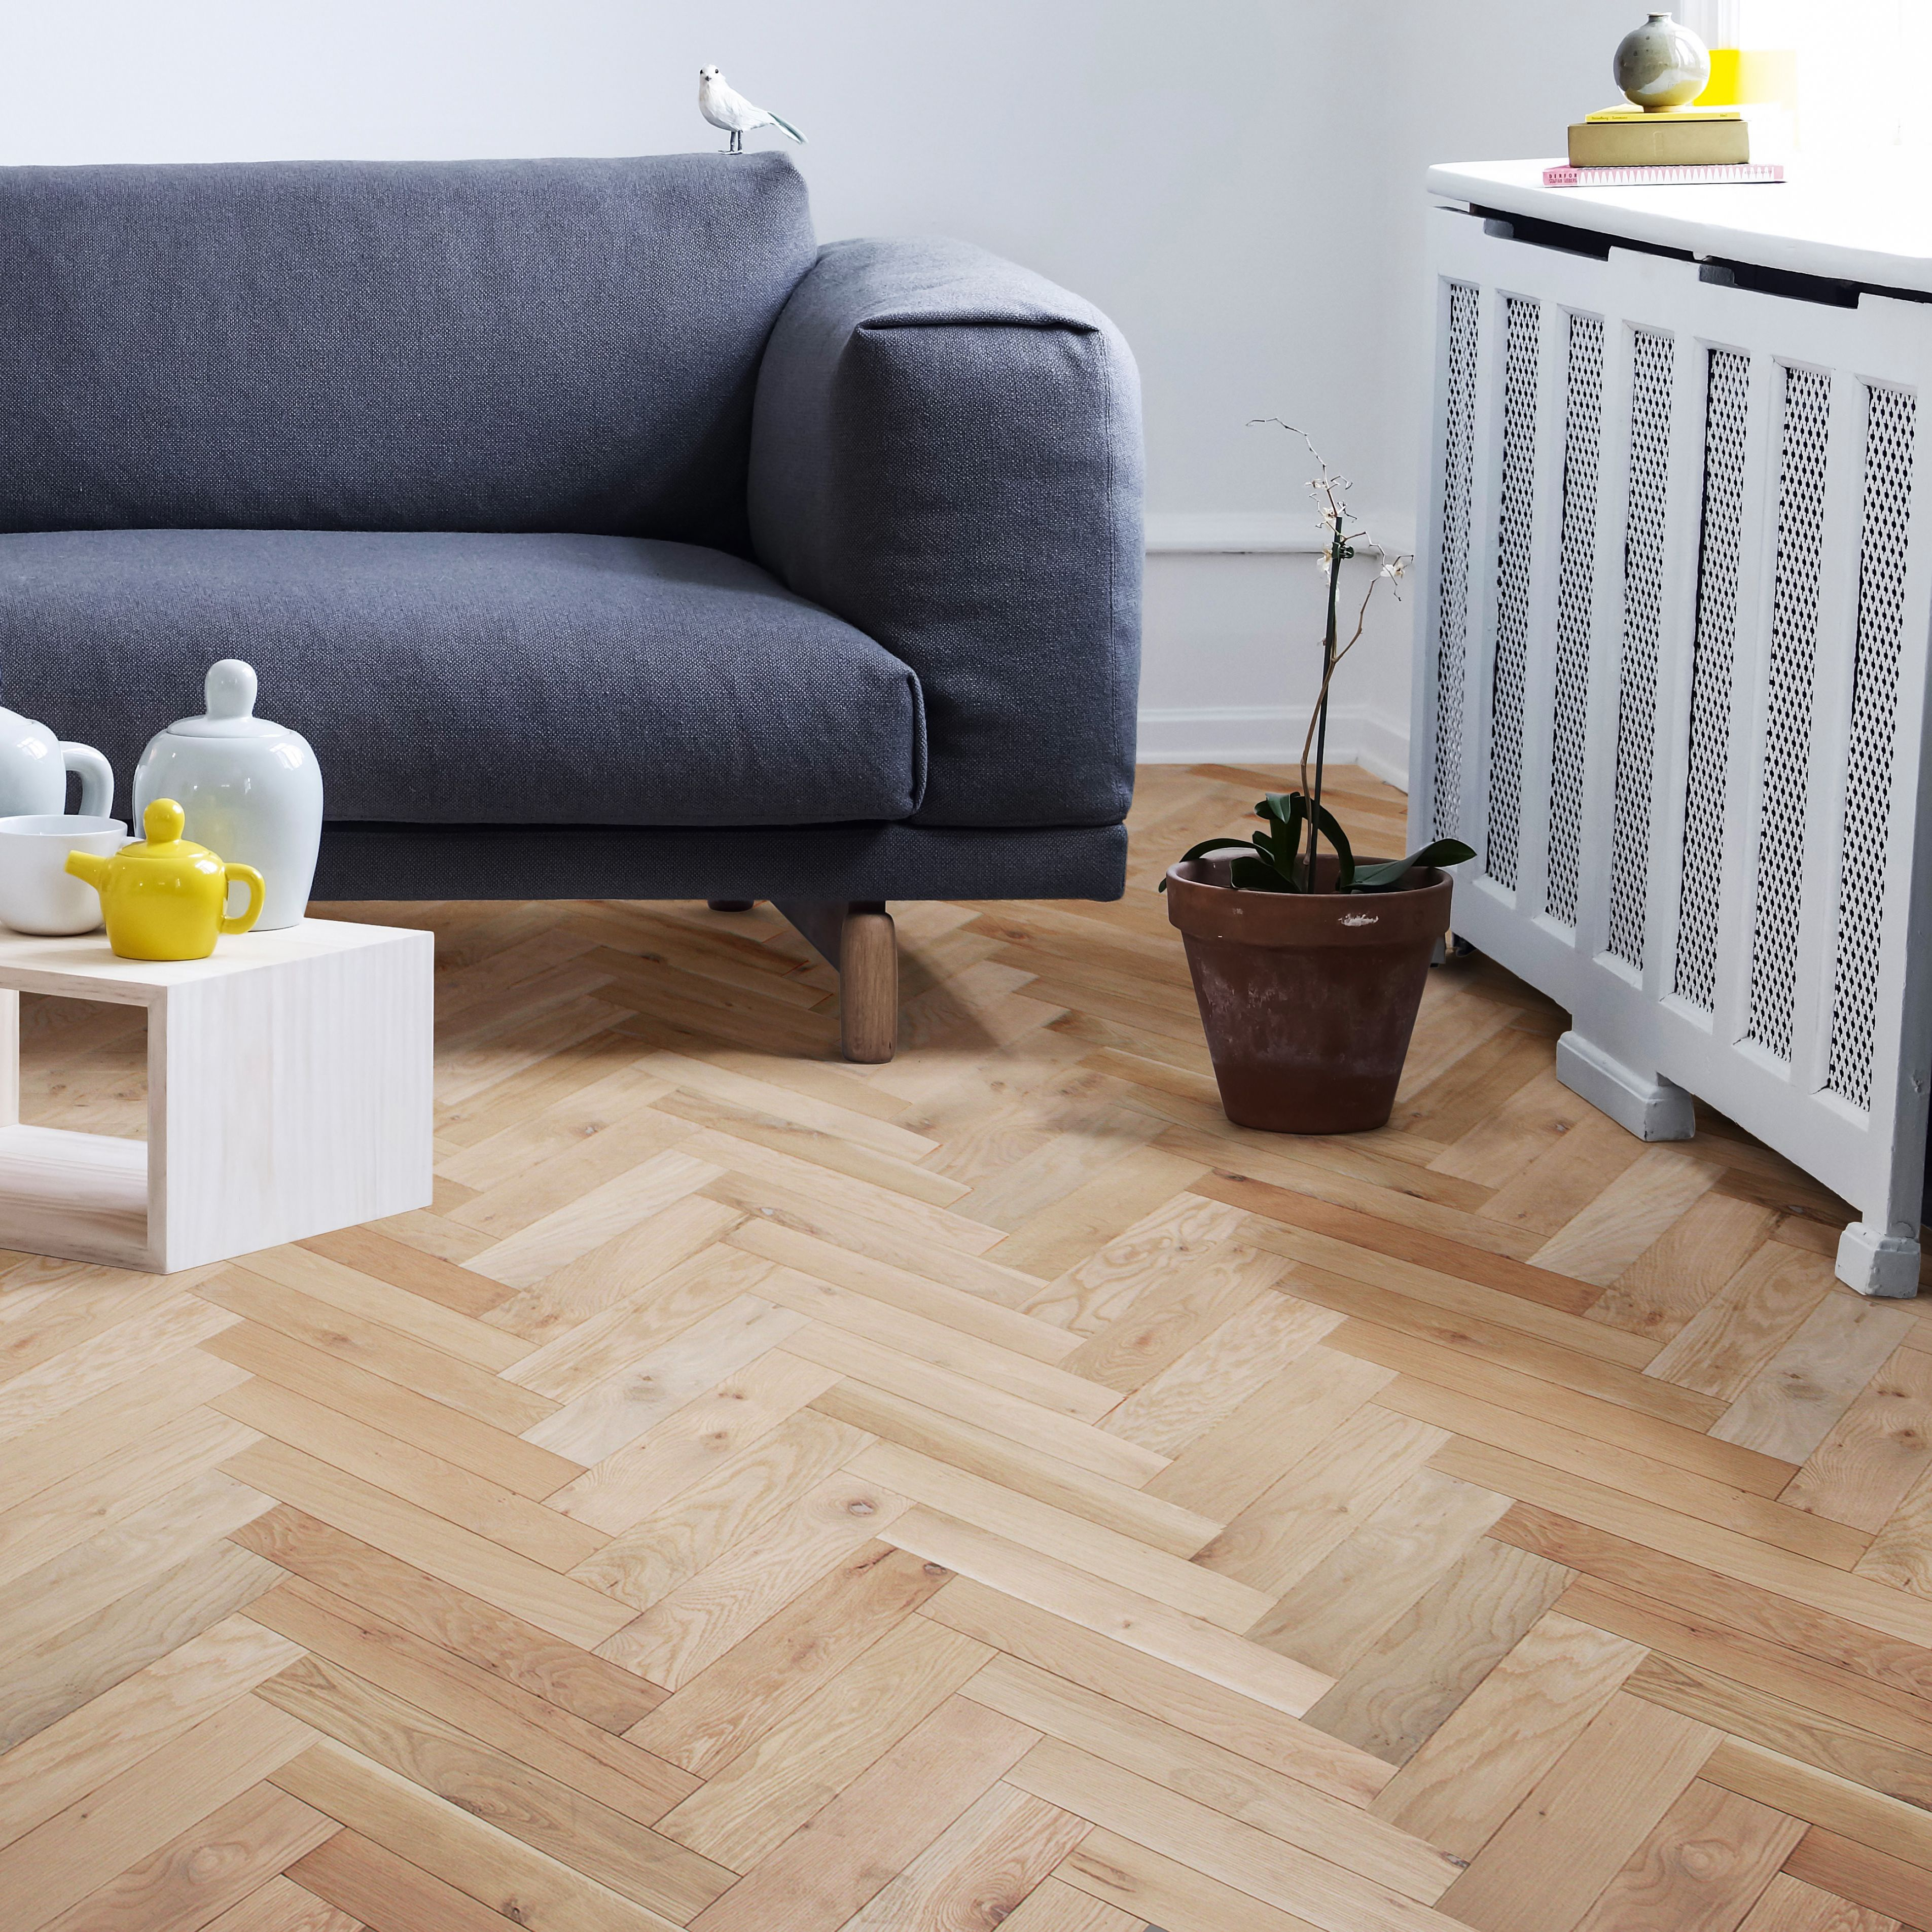 Colours Harmony Natural Solid Oak Flooring 1 458 M² Pack Departments Diy At B Q